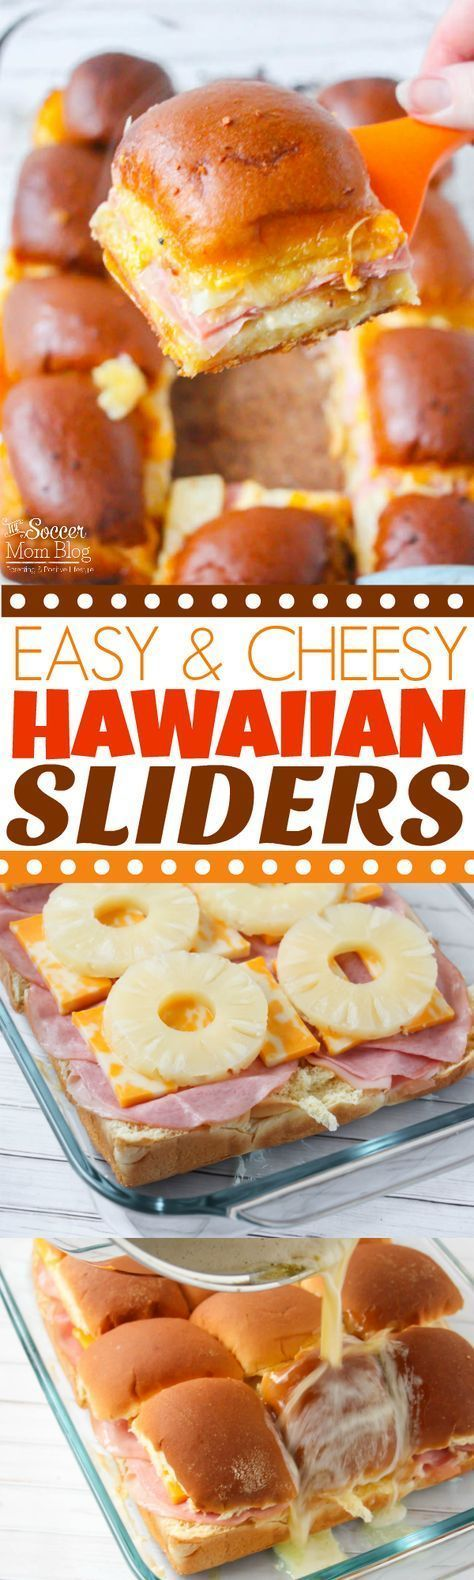 The BEST Hawaiian Sliders Recipe